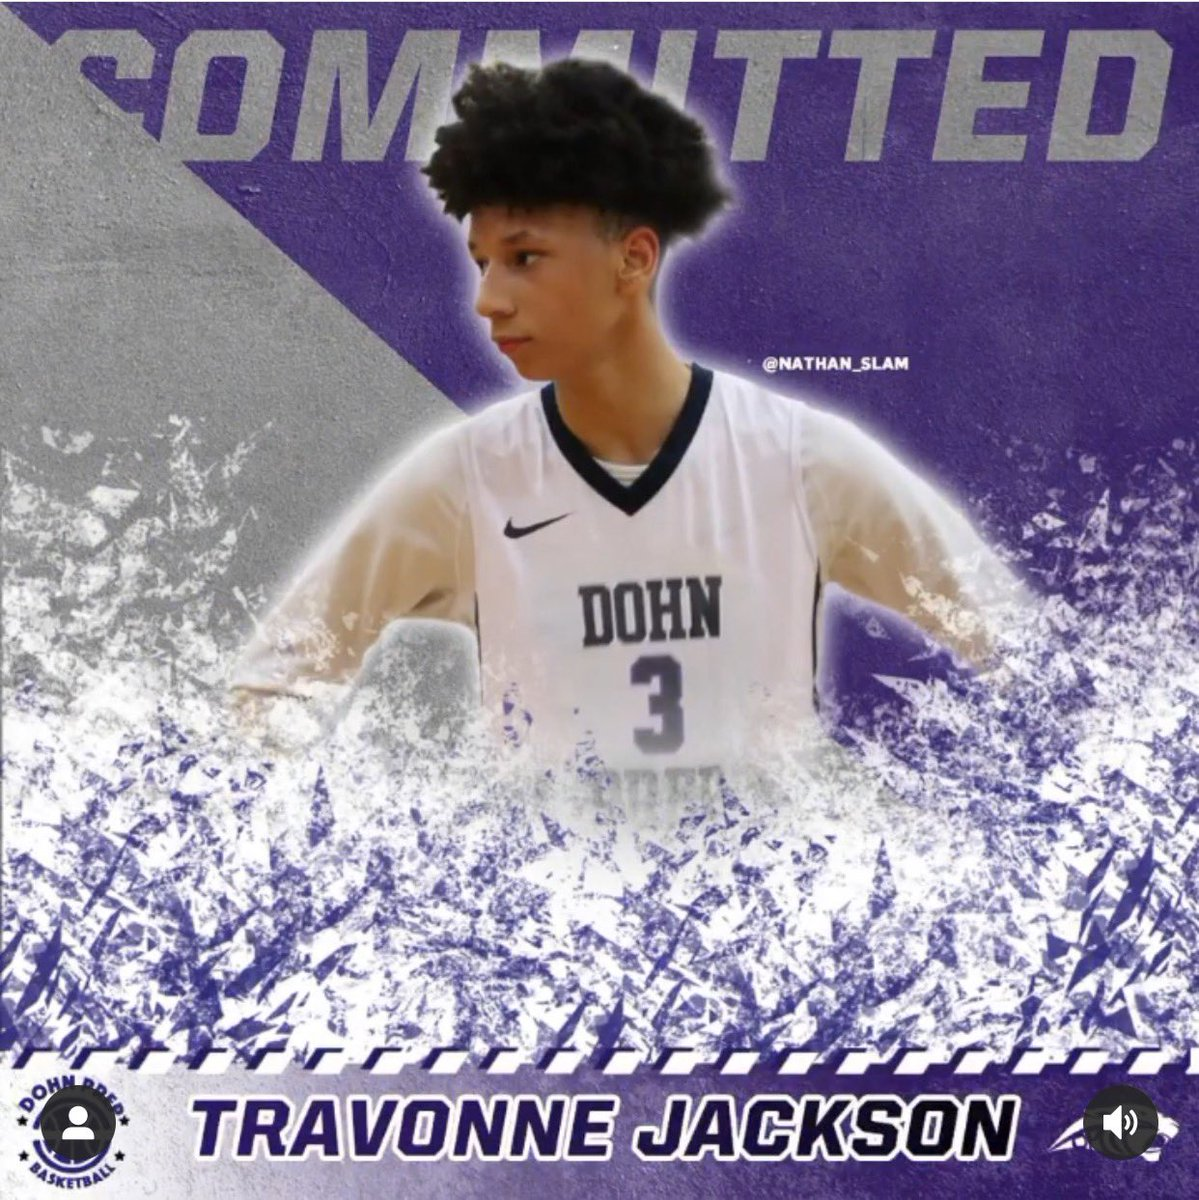 "Excited to welcome 6'6 PG, Travonne Jackson! ""Tray"" is a Big Point Guard that has a ton of upside and positional versatility. A gifted passers and can score at all three levels #classof2022 #chasingscholarships #dohnprep #commited @tray2litt #staytune @DohnPrepBball @CoachSammyV https://t.co/glXCXU6jhO"